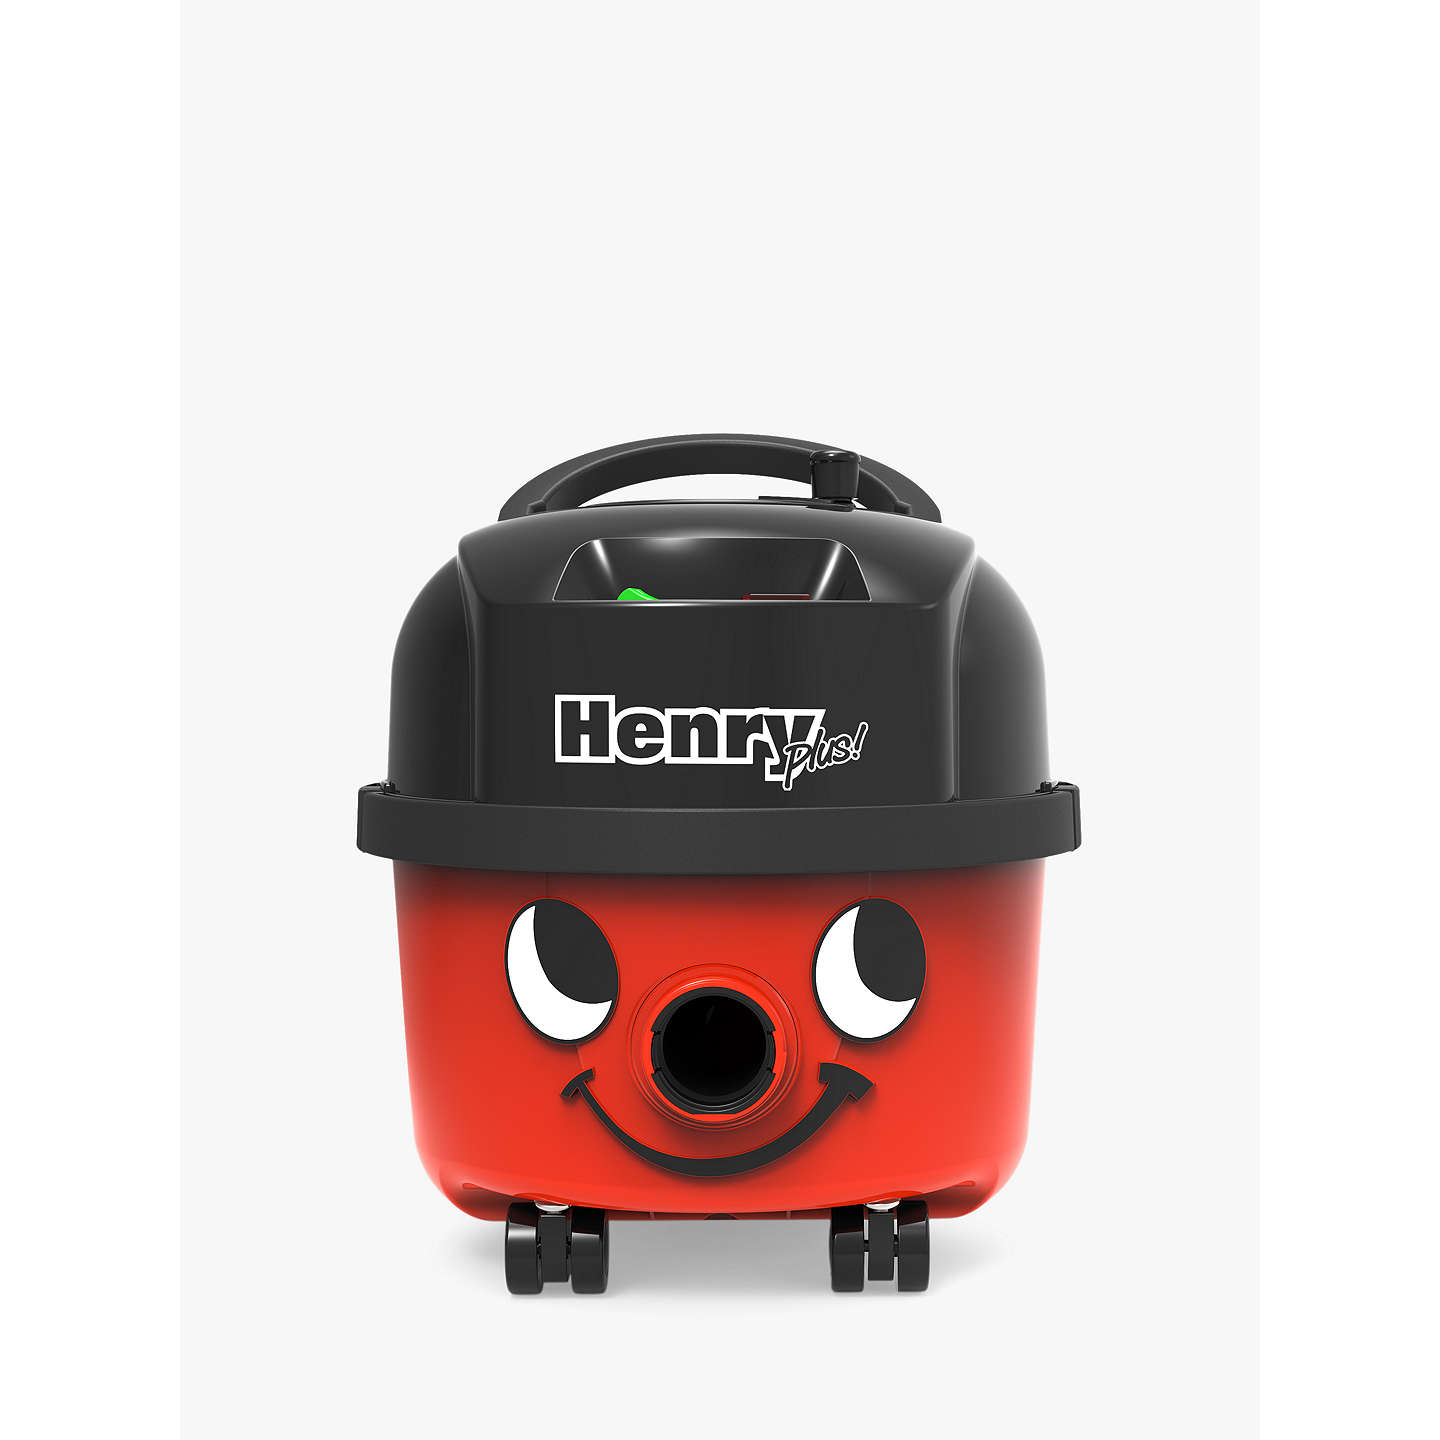 BuyNumatic Henry Plus Vacuum Cleaner Online At Johnlewis